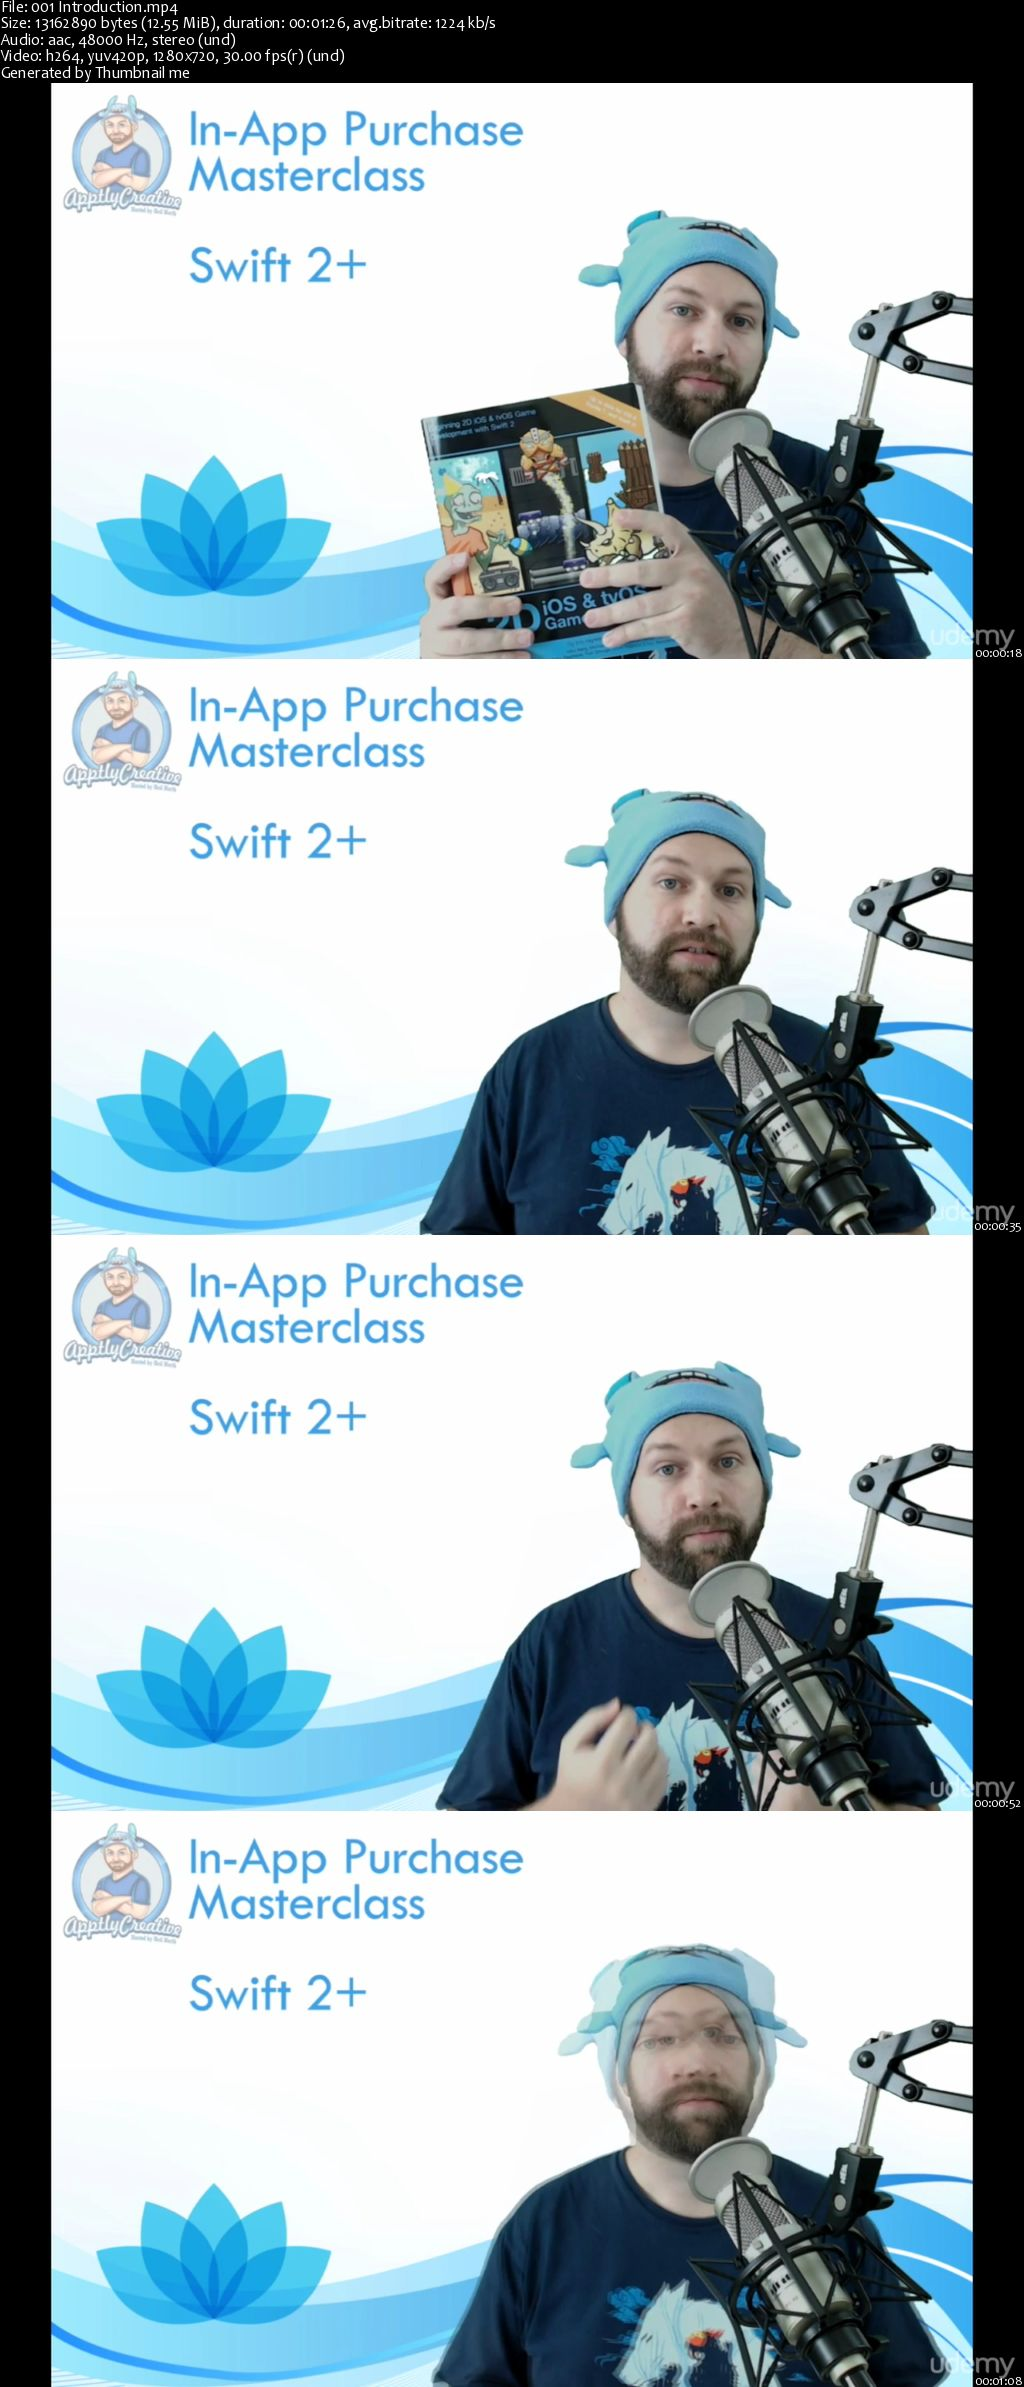 iOS In-App Purchase with Swift 2.2+ Masterclass